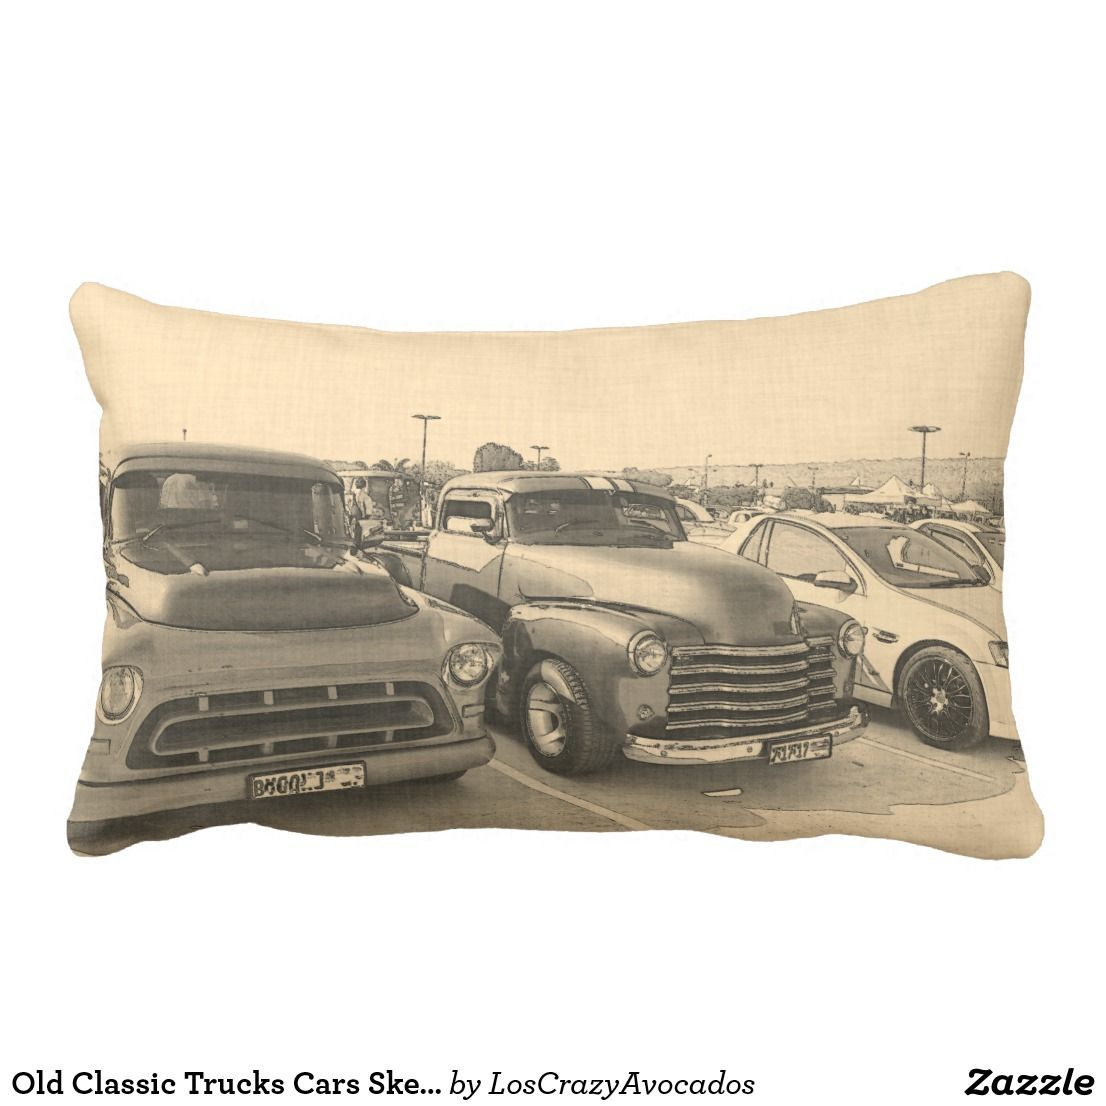 Old Classic Trucks Cars Sketch Throw Pillow | Car sketch, Pillows ...